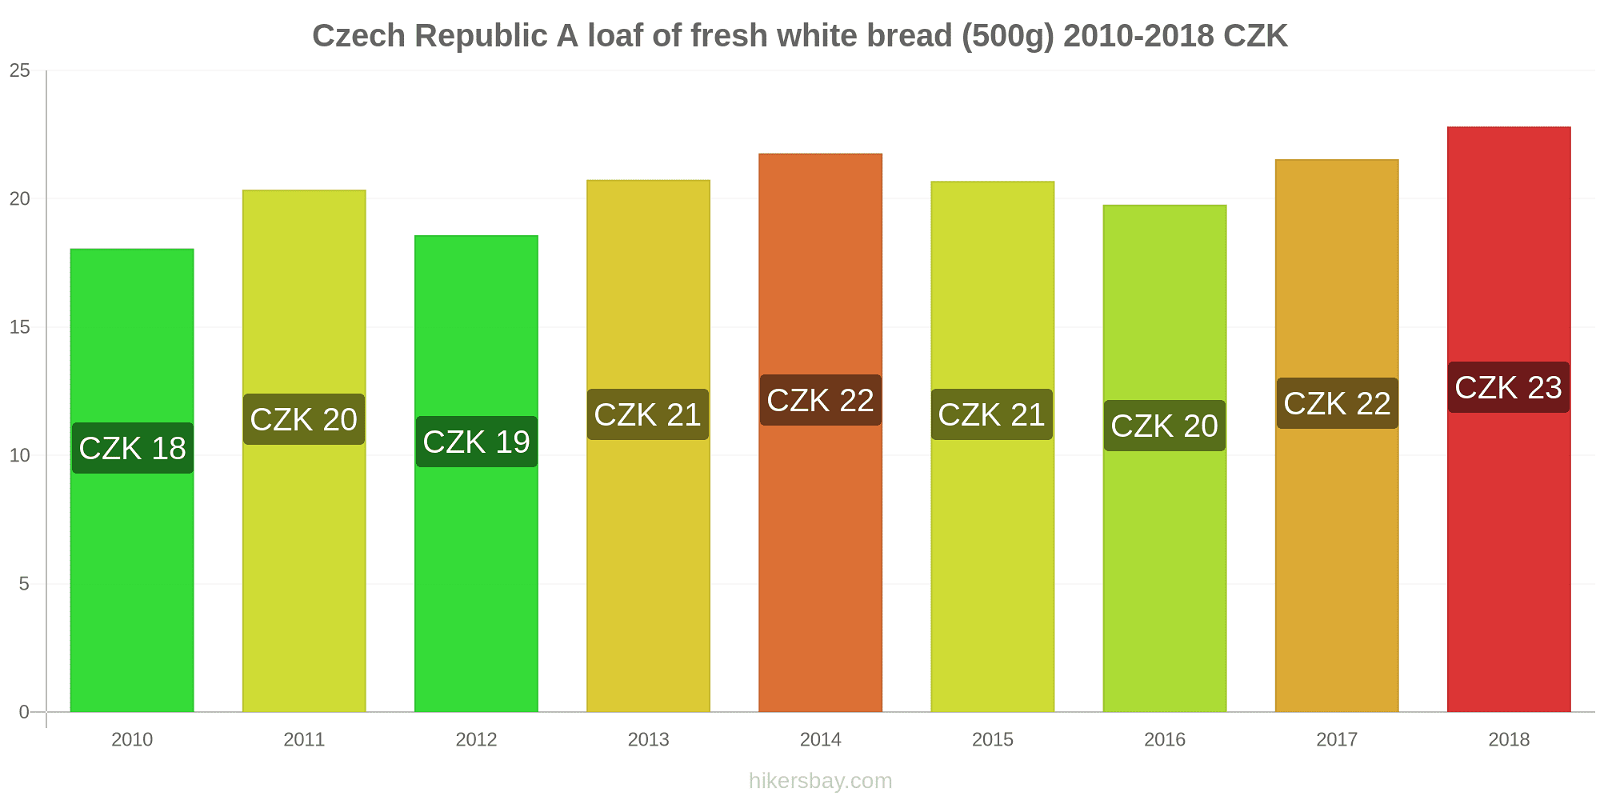 Czech Republic price changes A loaf of fresh white bread (500g) hikersbay.com